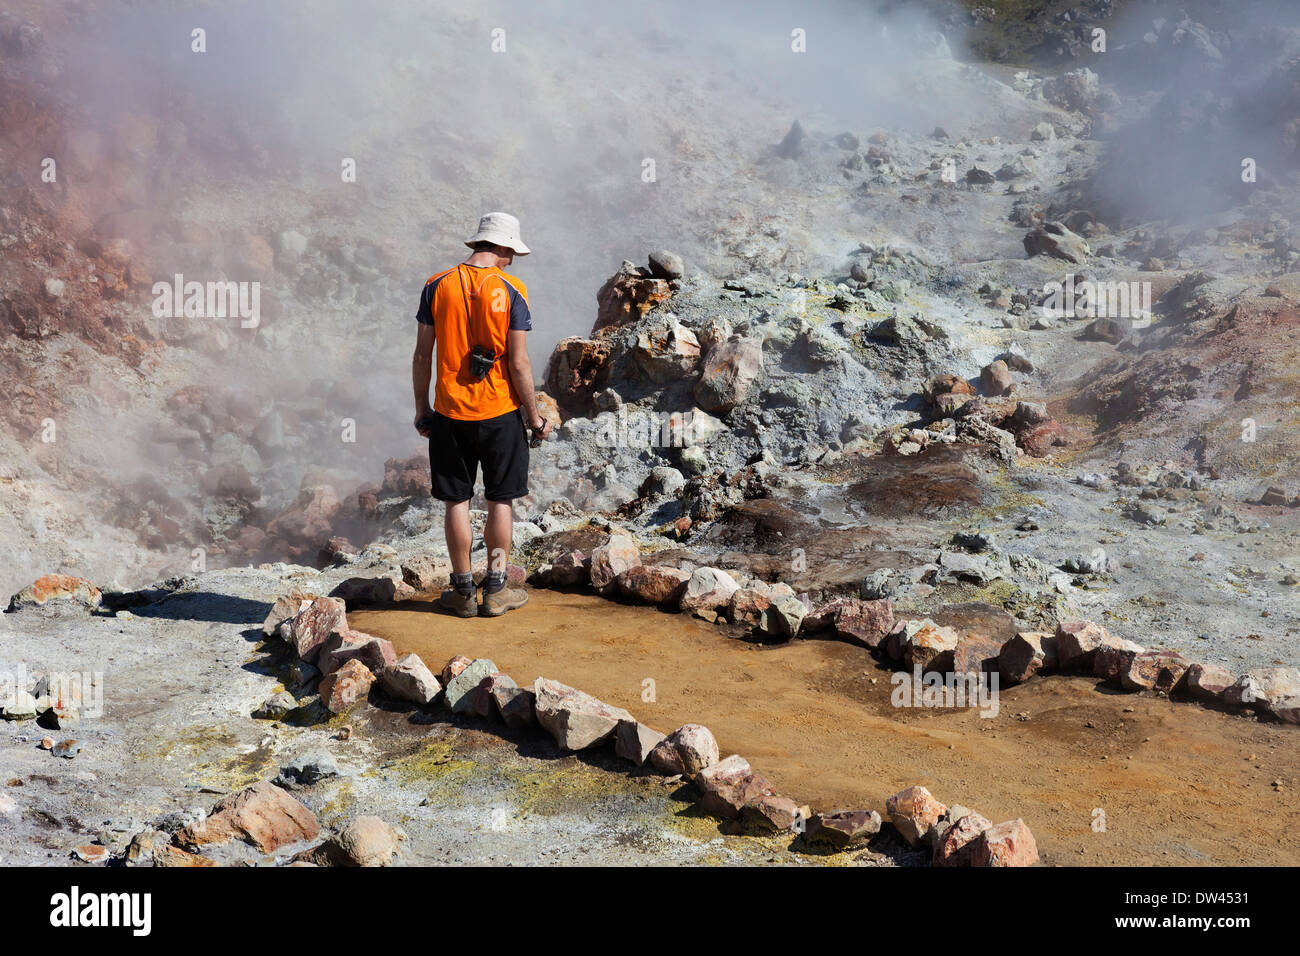 Walker on the Laugavegur Hiking Trail Examining an Active Geothermal Area on the Slopes of the Brennisteinsalda Volcano Iceland - Stock Image